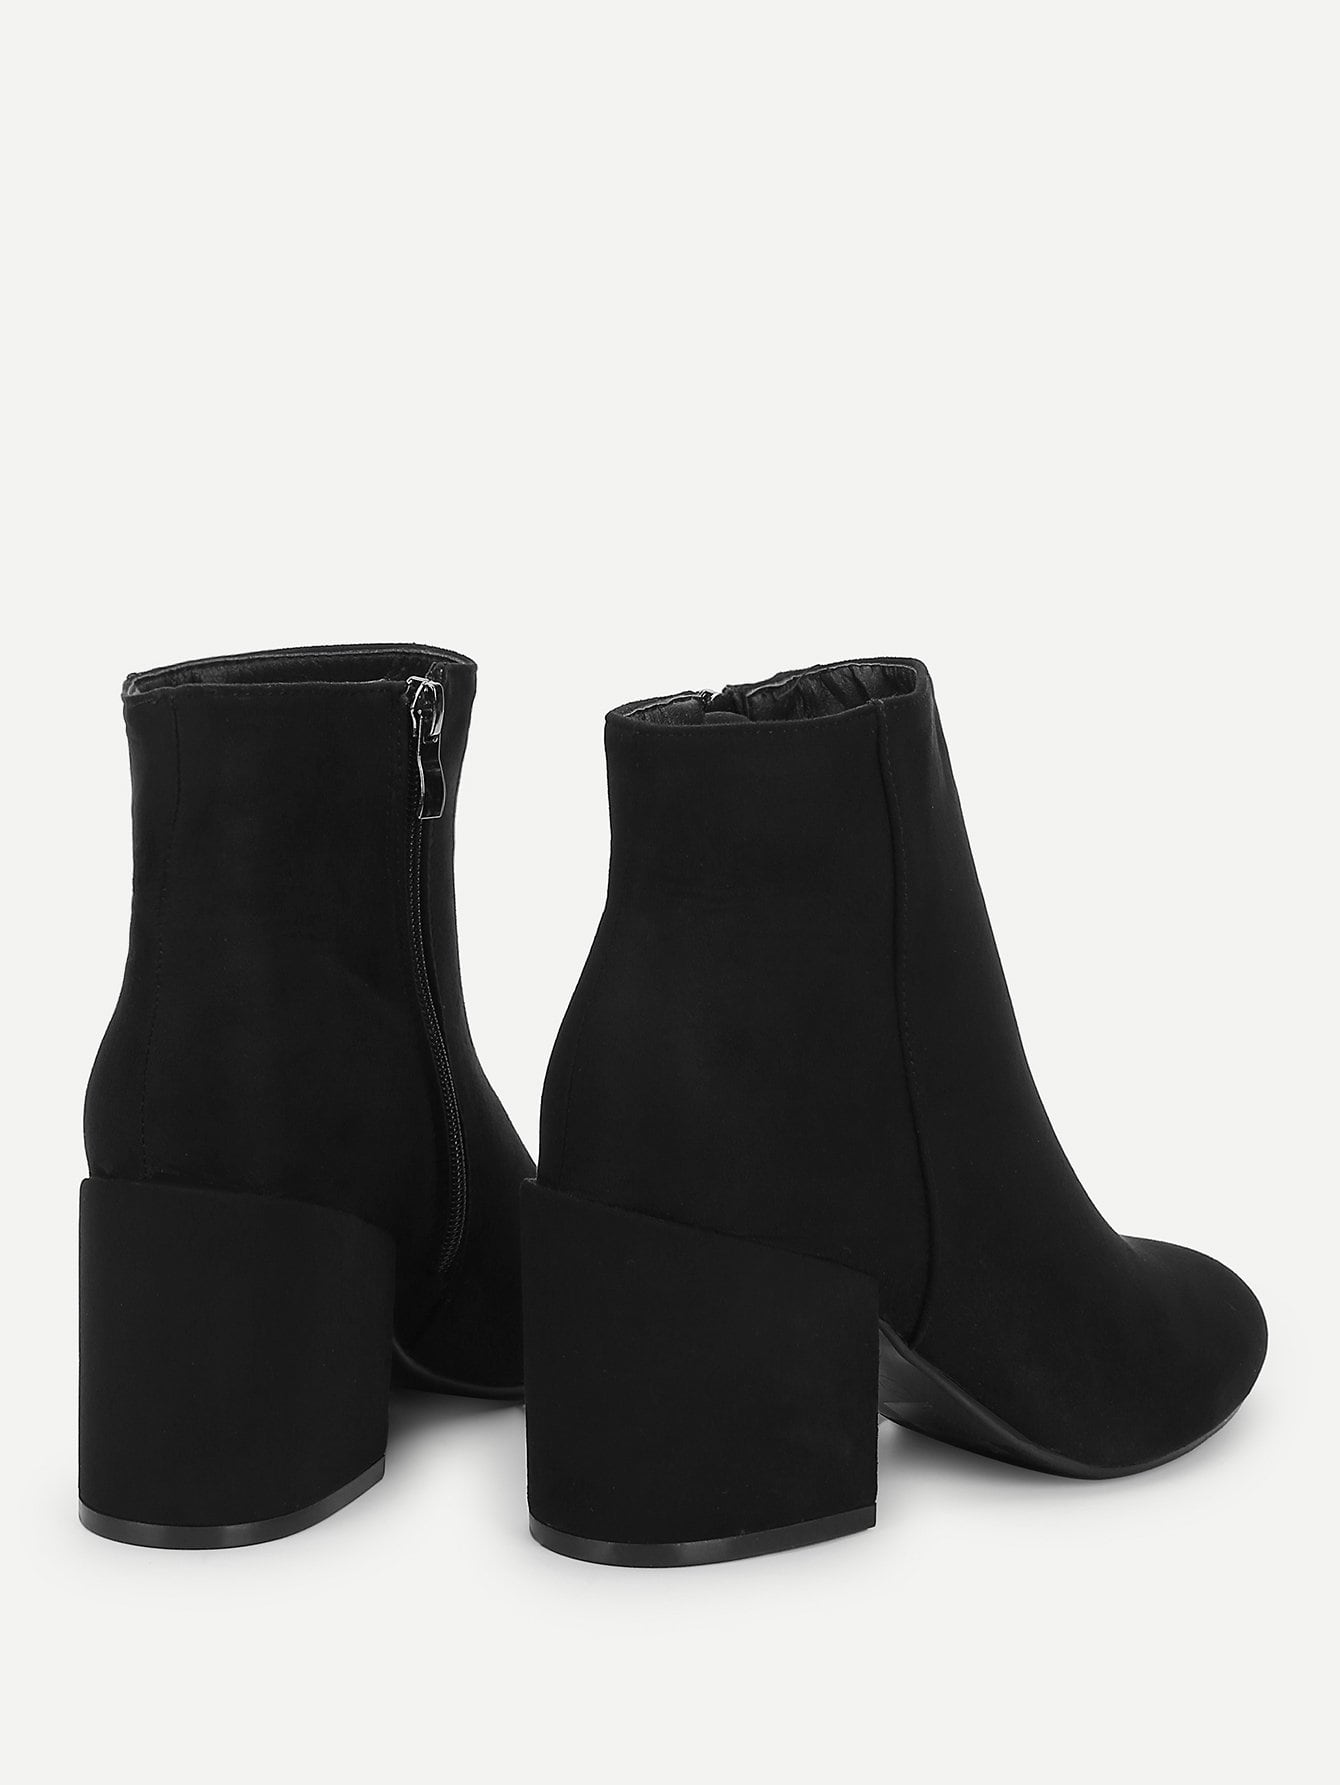 Formal Boots - Plain Block Heeled Ankle